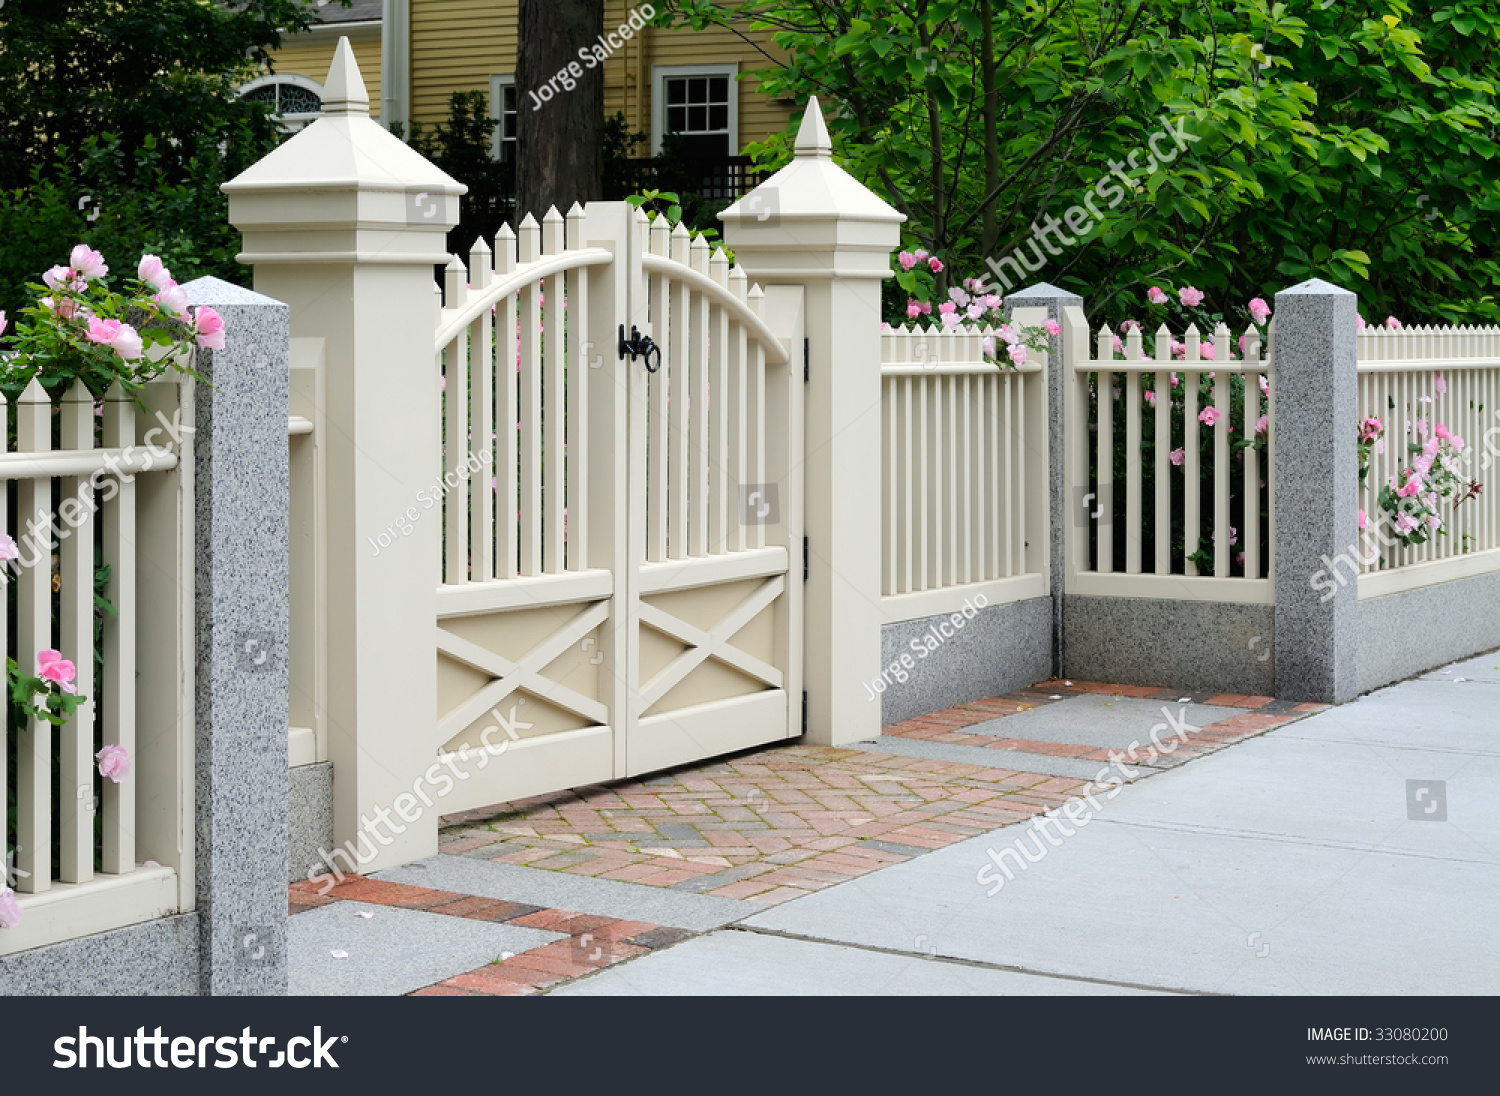 White Gate And Fence With Pink Roses On House Entrance Elegance